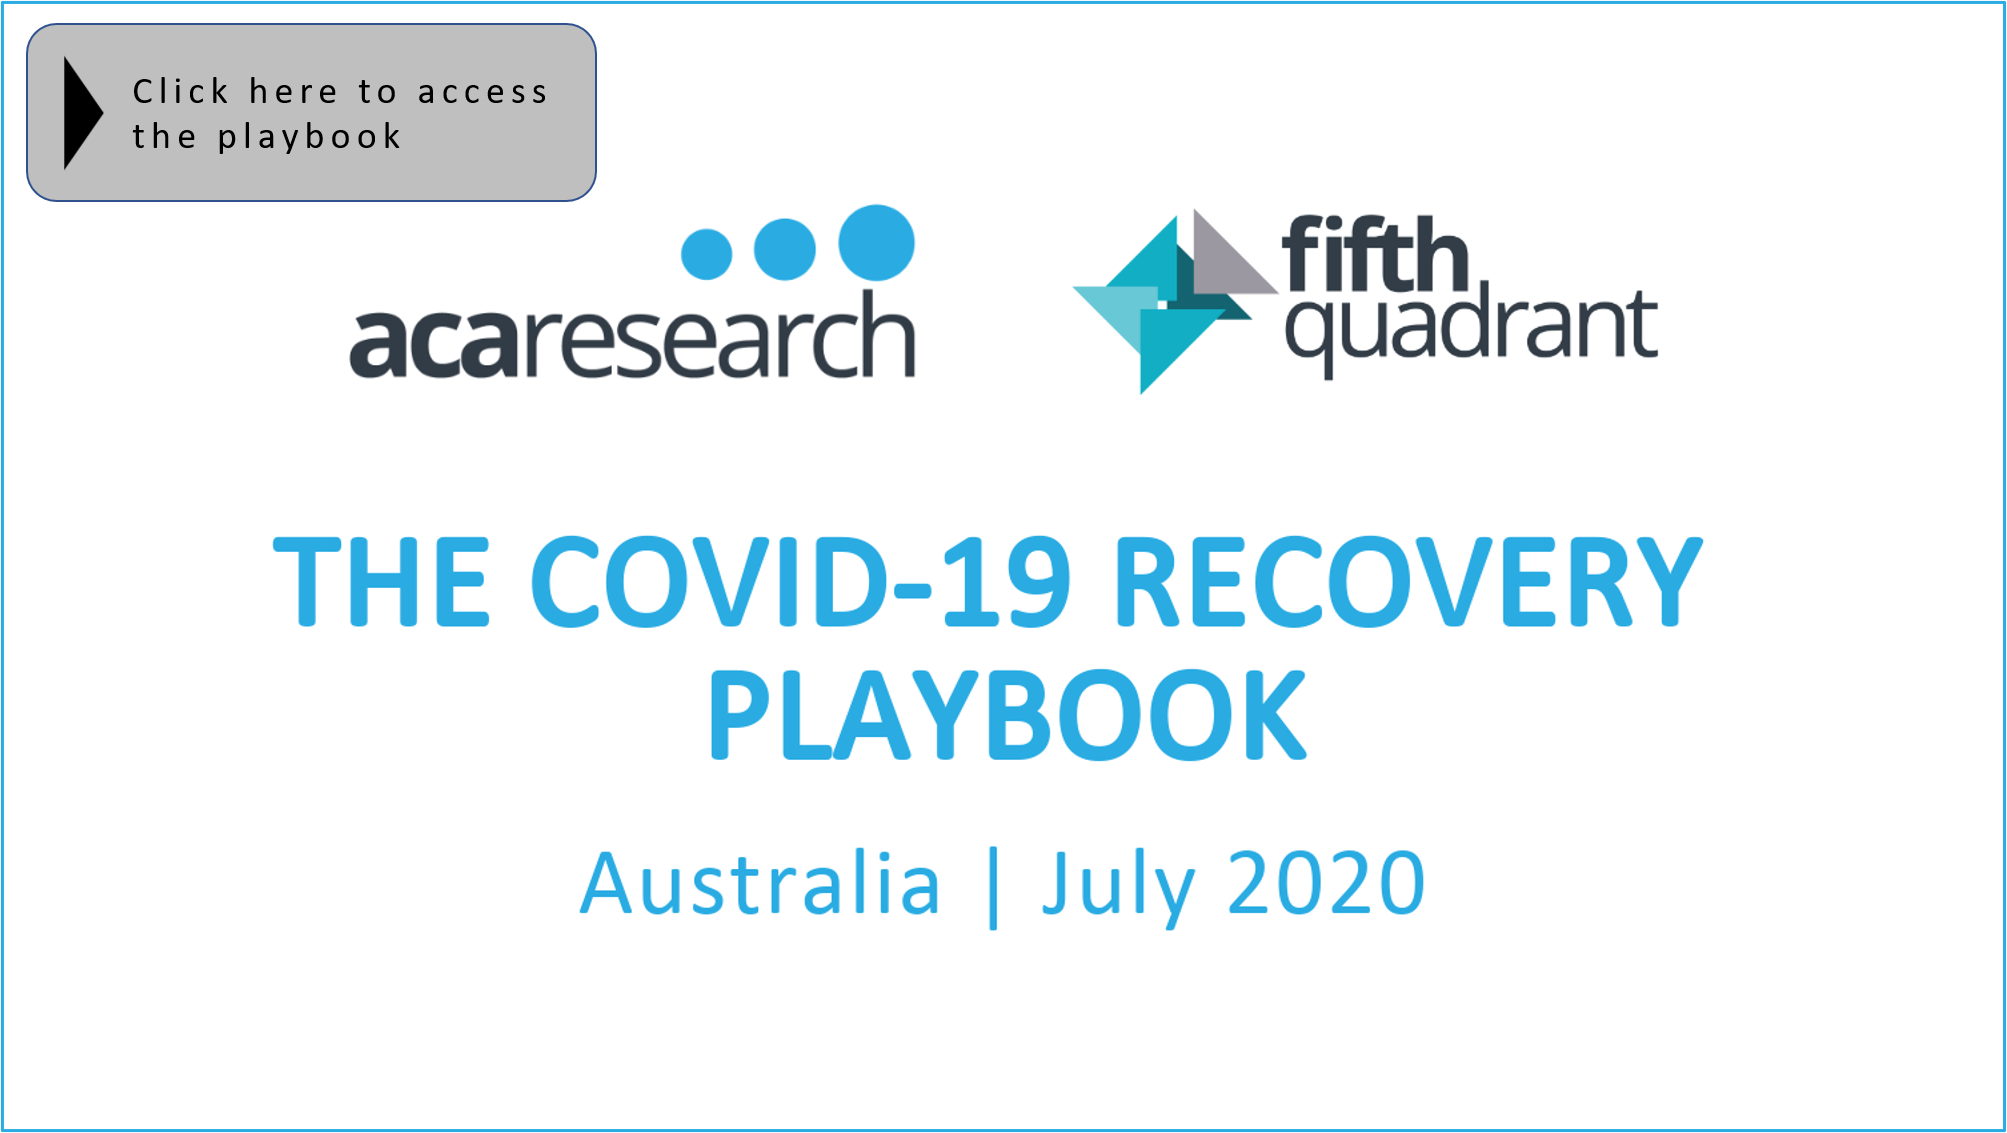 Planning For Recovery - The COVID-19 Recovery Playbook